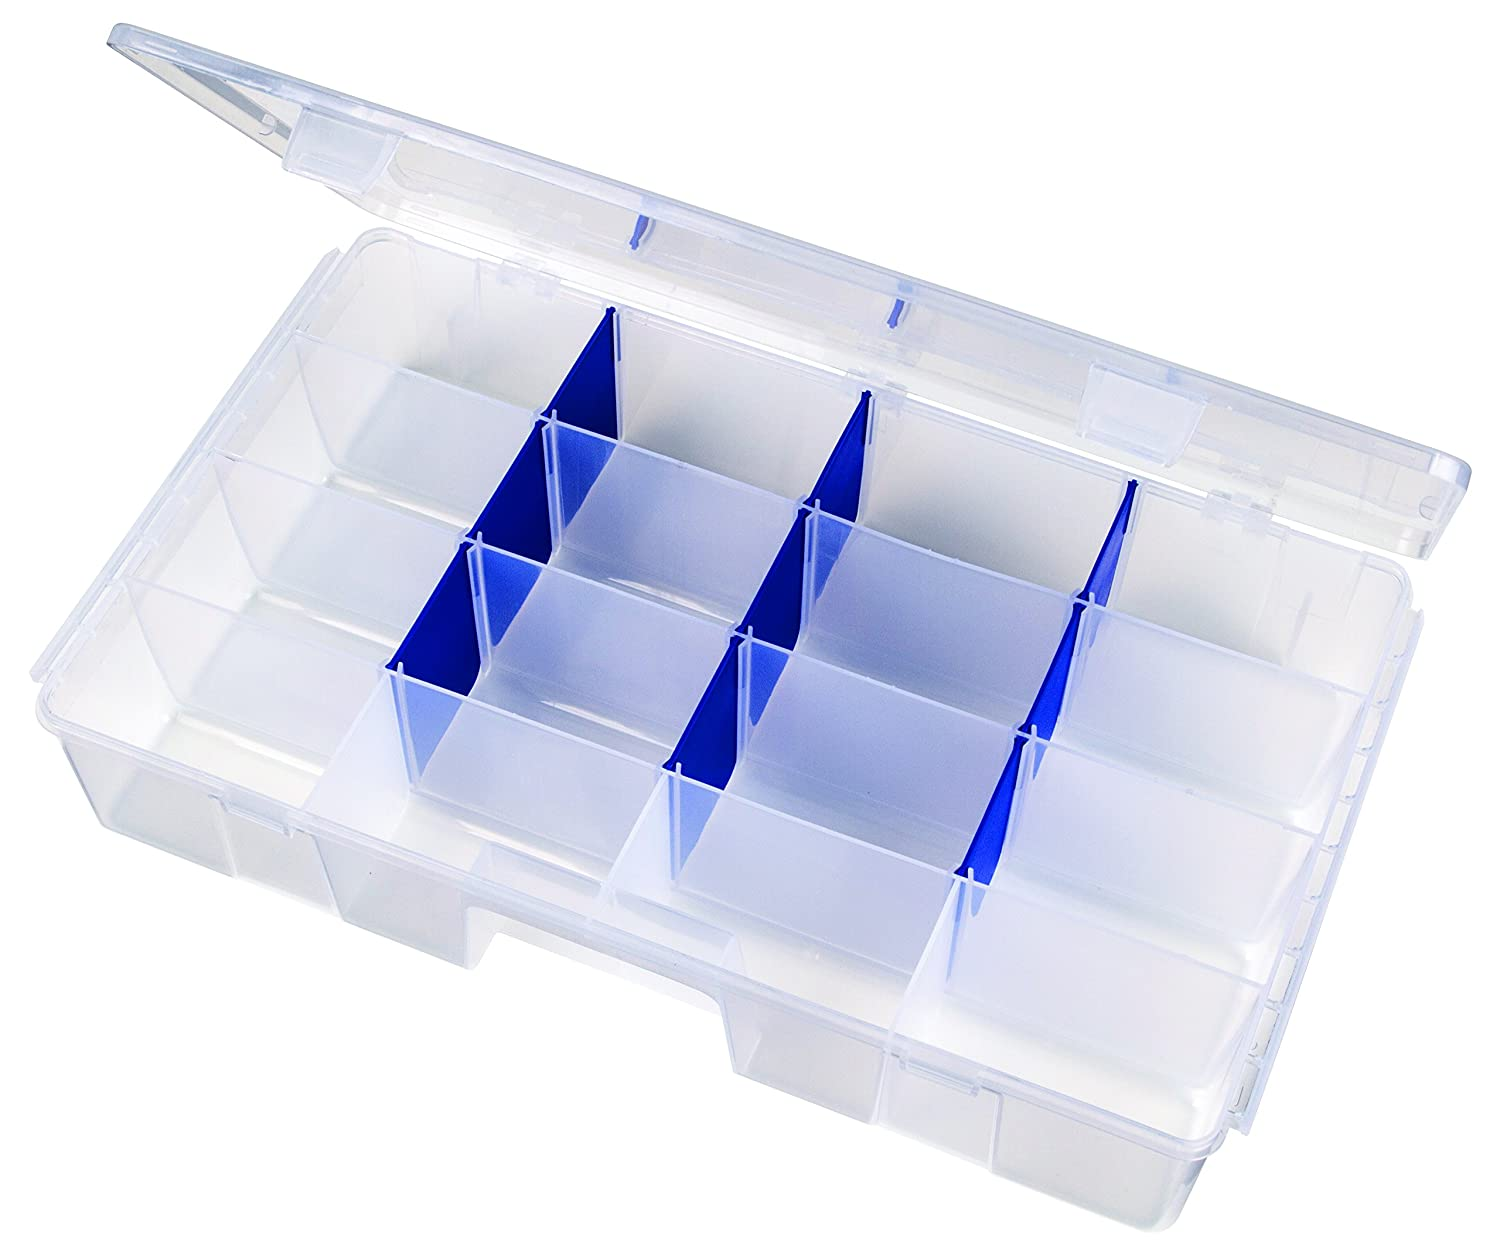 Flambeau Tackle Tuff Tainer Tackle Boxes with 4 Fixed Compartment